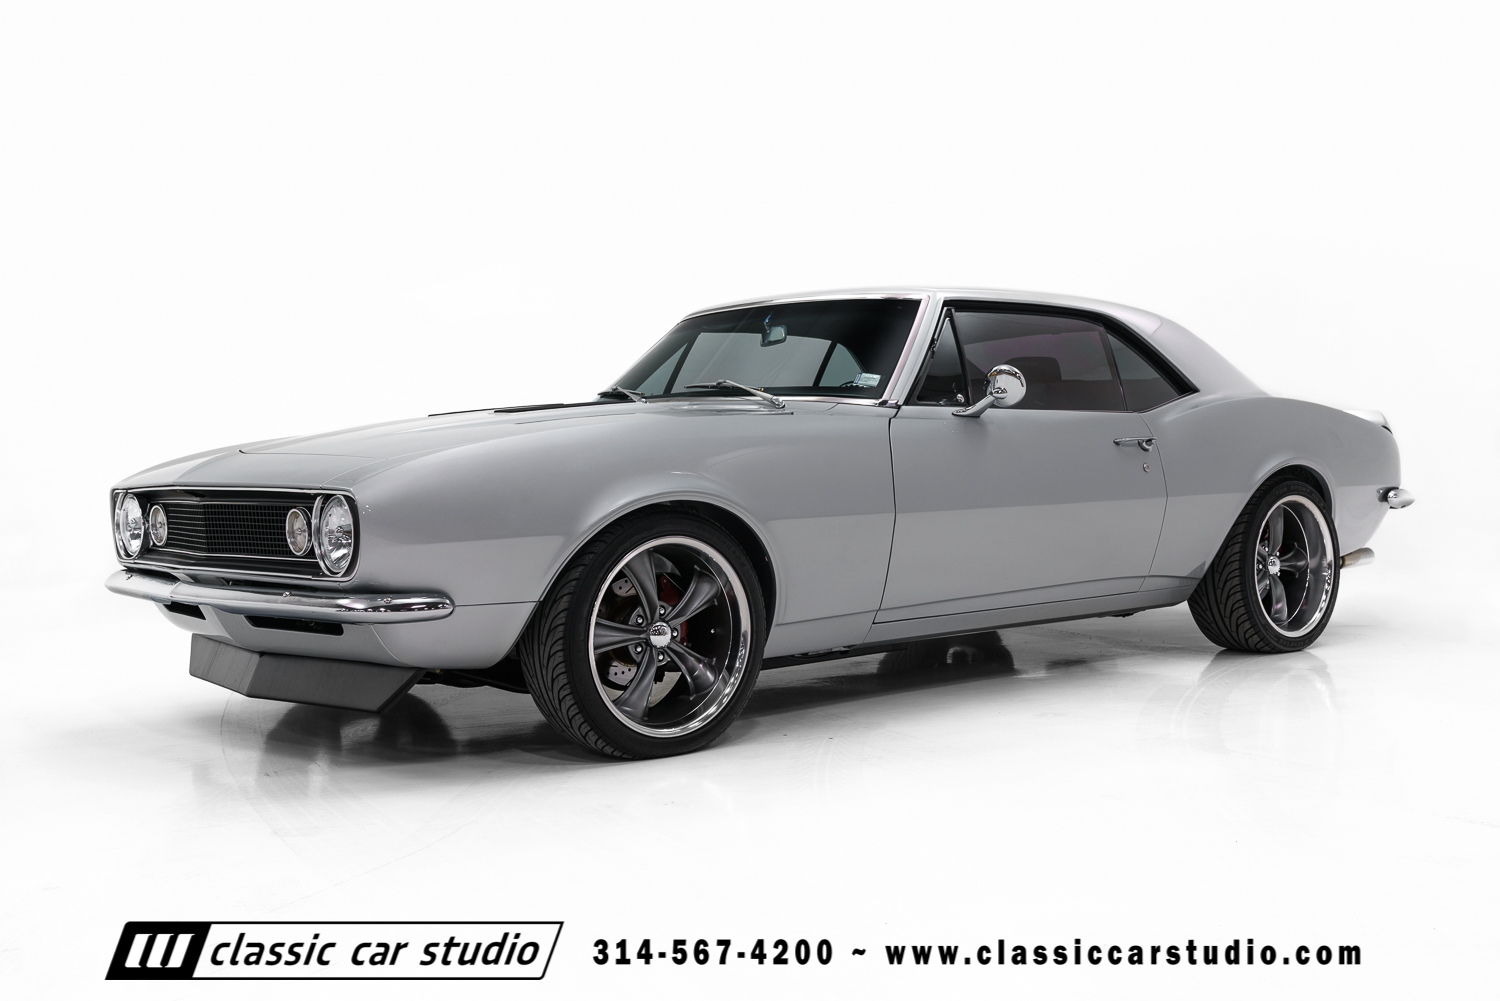 1967 Chevrolet Camaro Classic Car Studio